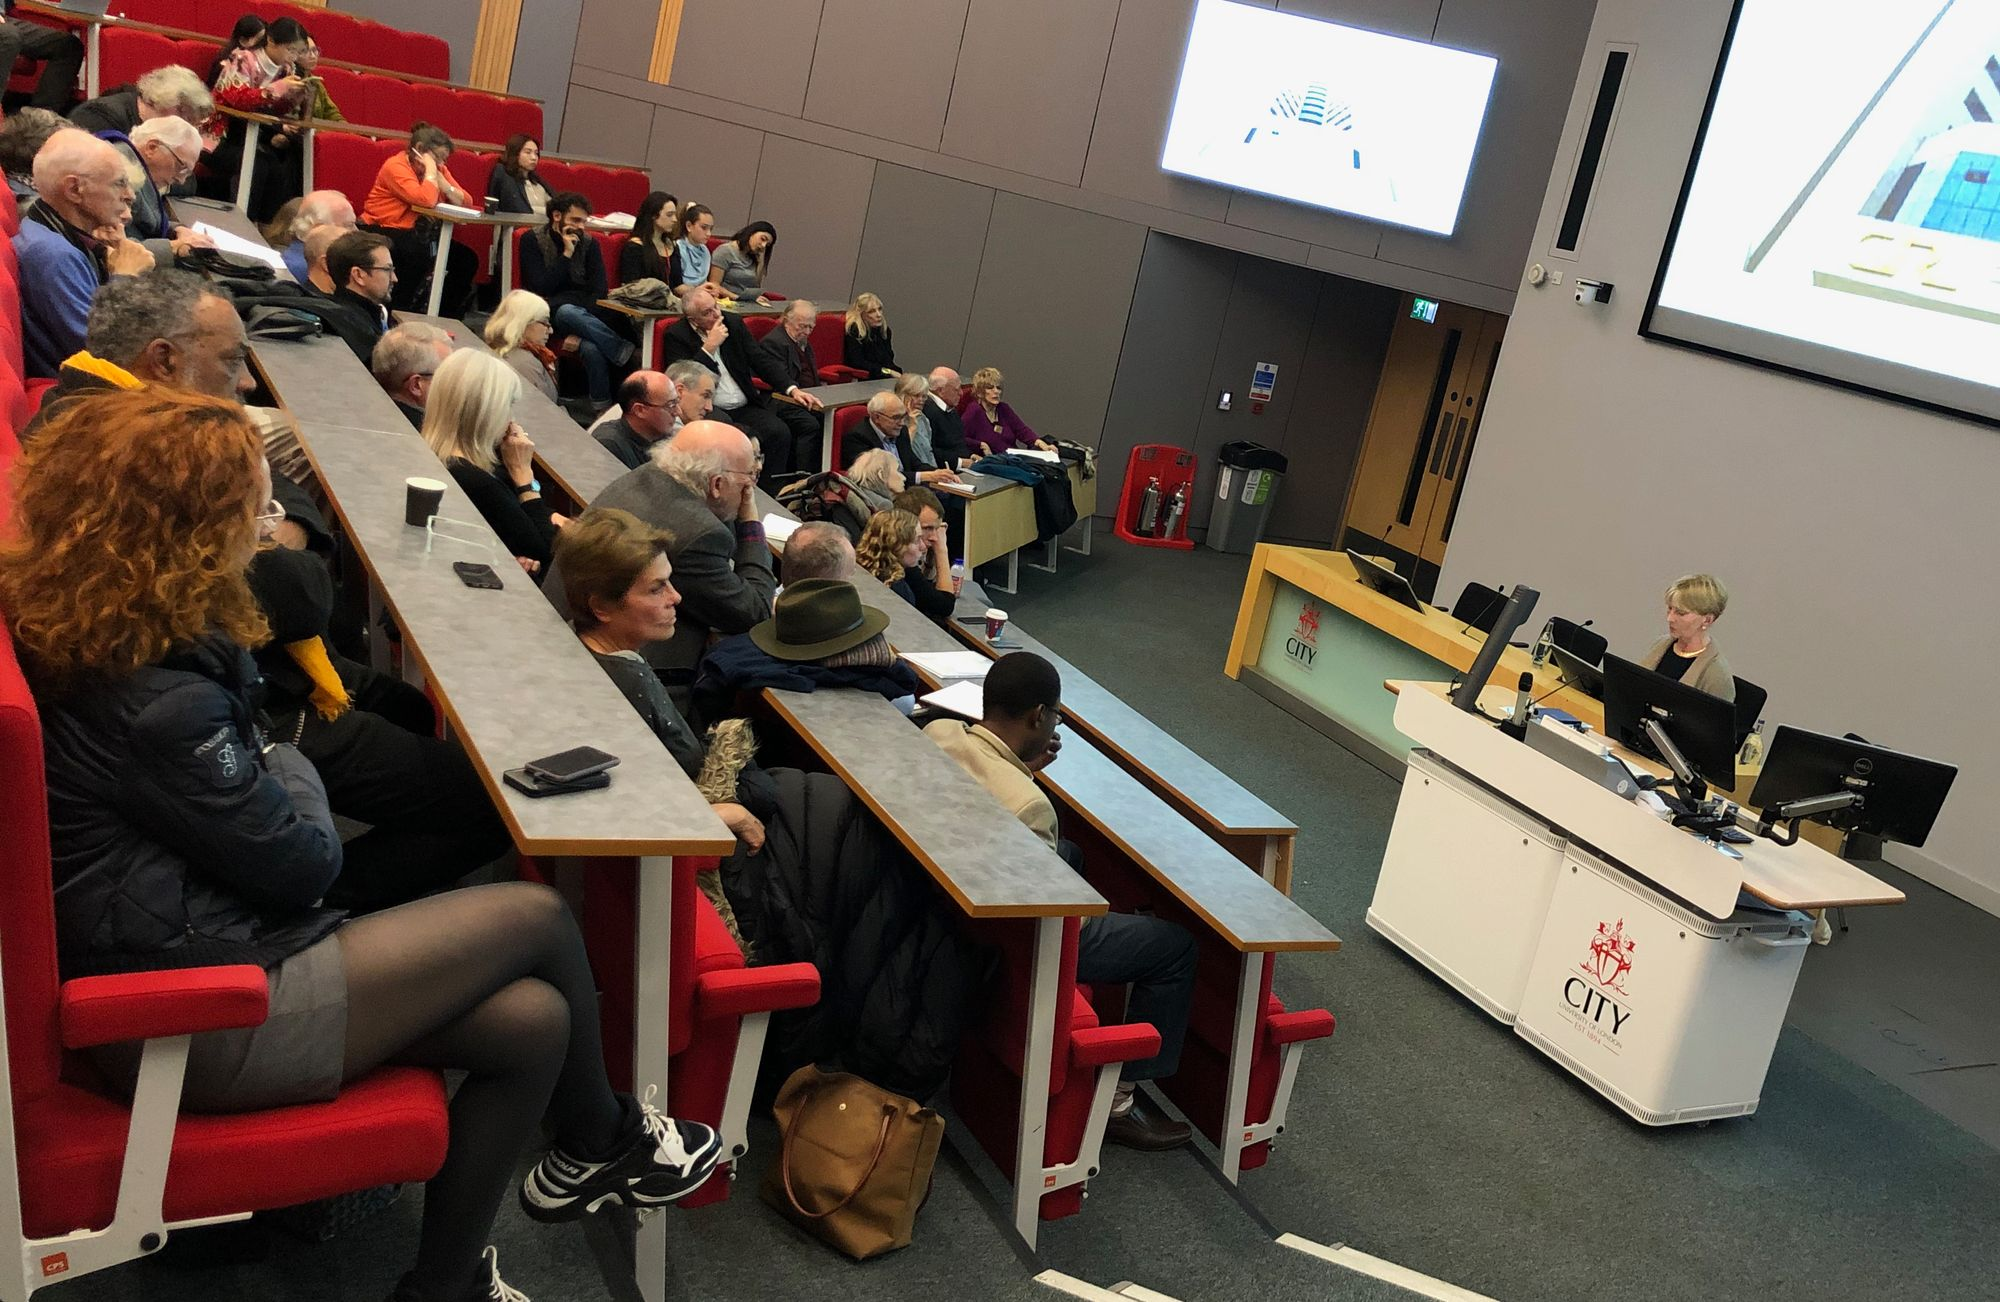 The audience at Isabel Hilton's James Cameron Memorial Lecture